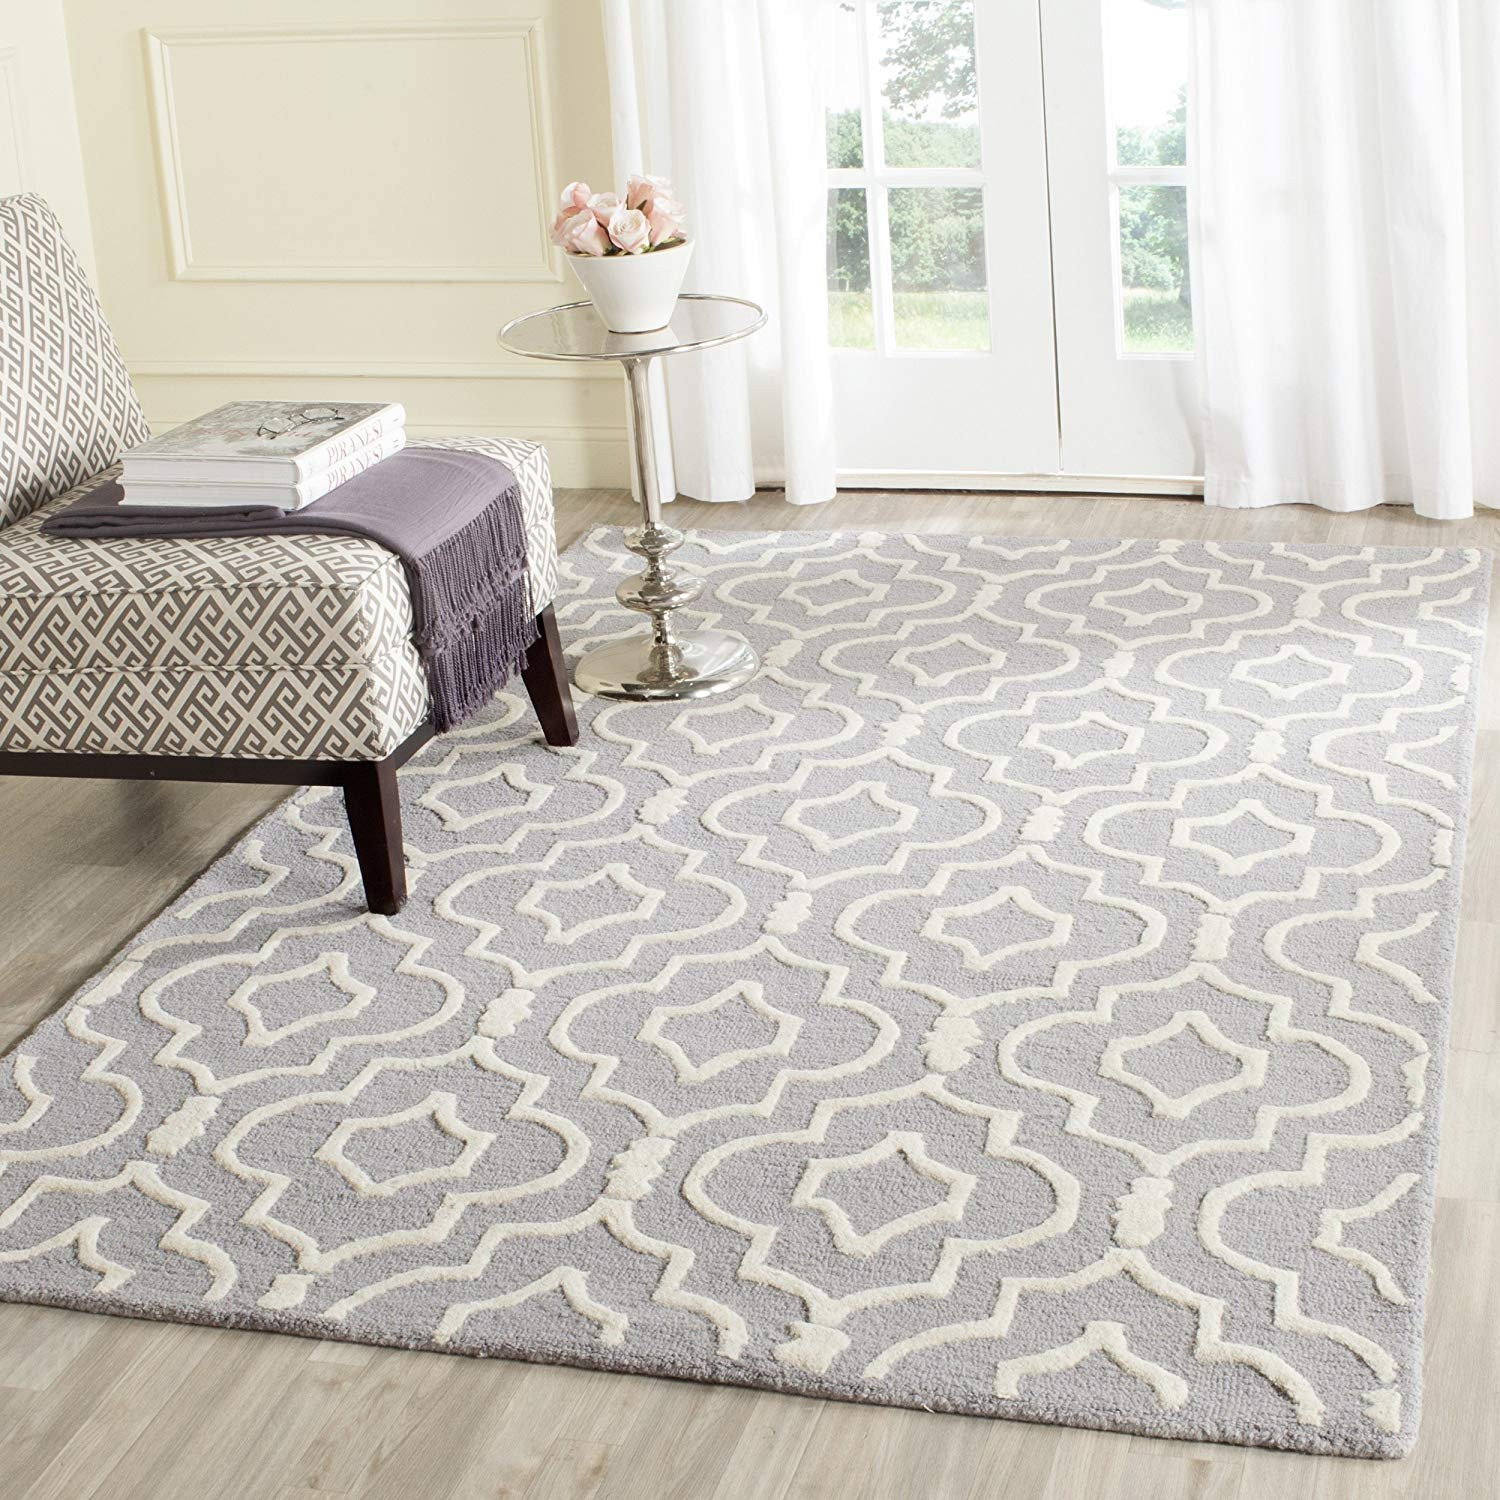 Bedroom area Rug Placement Awesome Safavieh Cambridge Collection Cam141d Handcrafted Moroccan Geometric Silver and Ivory Premium Wool area Rug 9 X 12